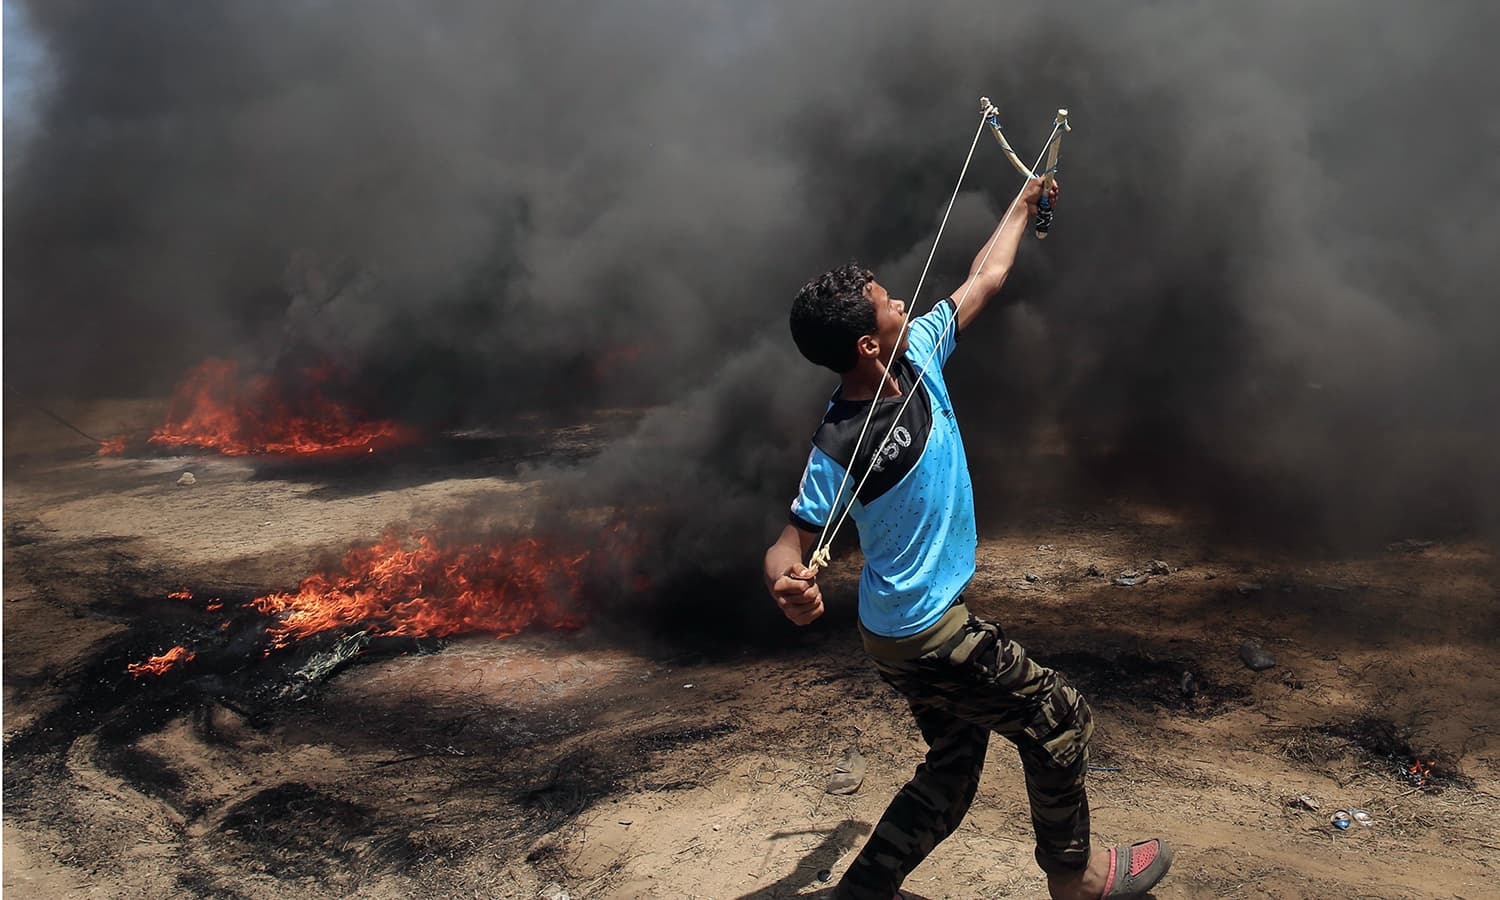 A Palestinian man uses a slingshot during clashes with Israeli forces along the border with the Gaza strip east of Khan Yunis. — AFP